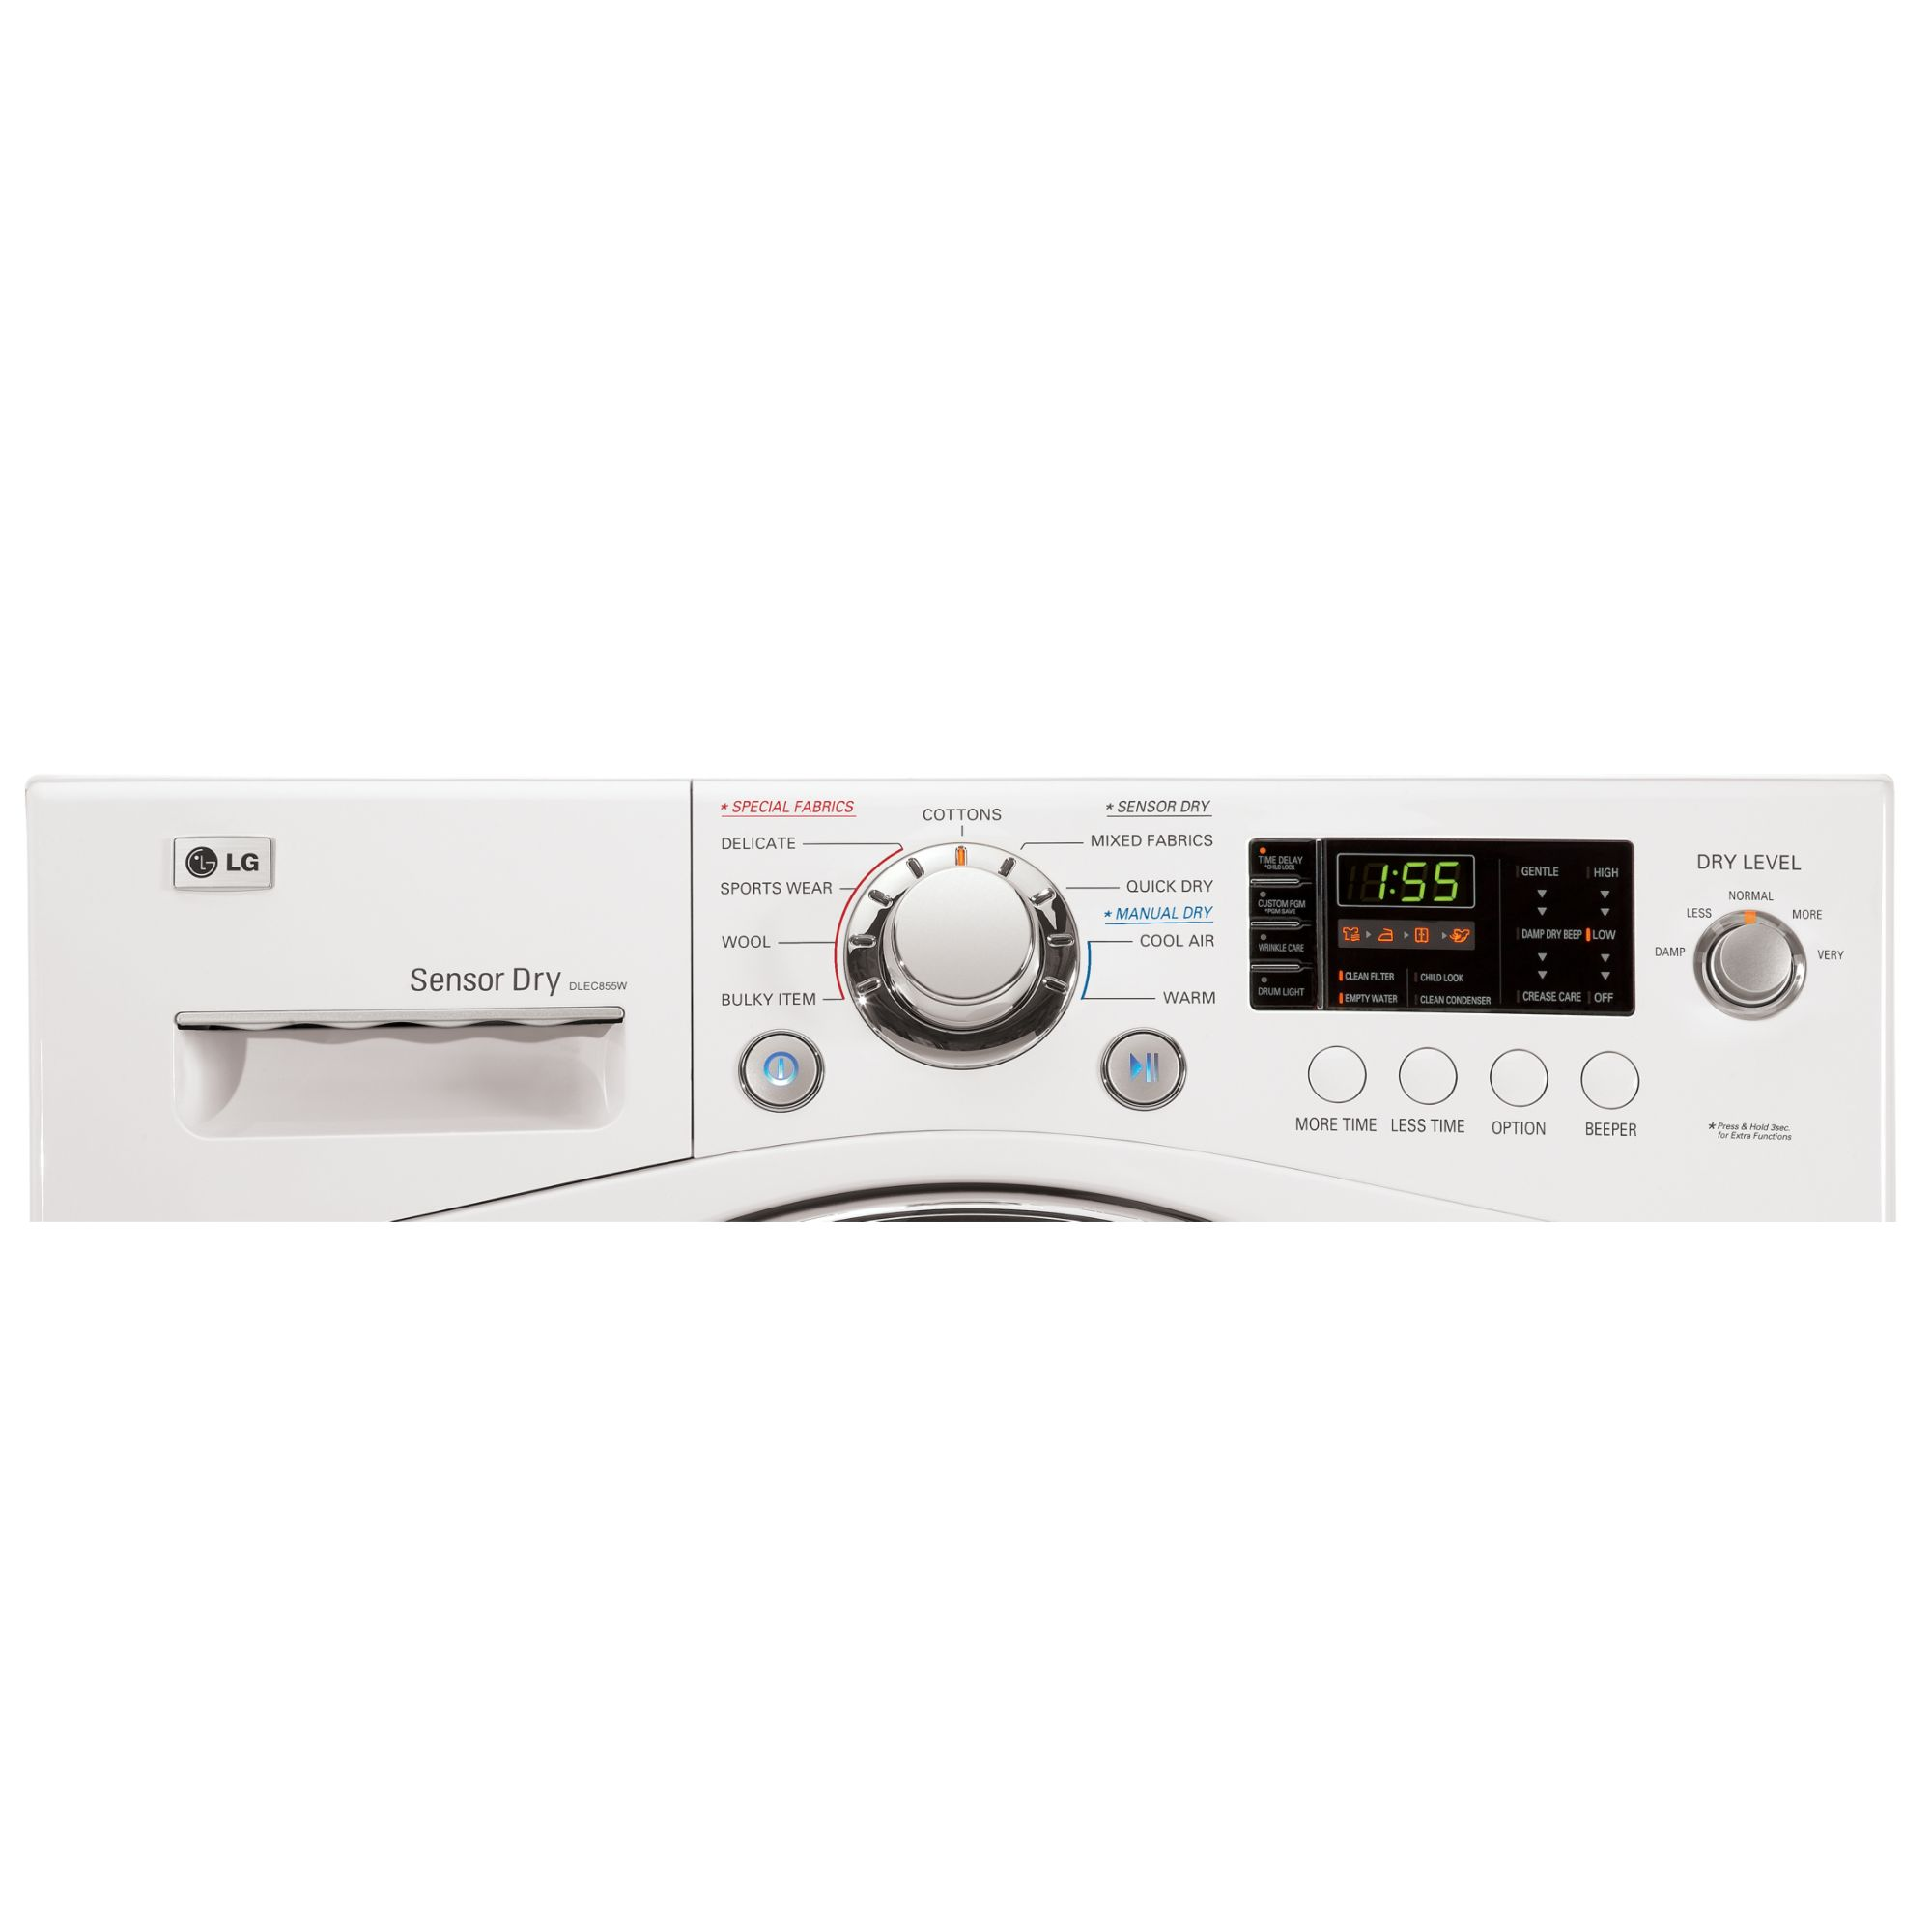 LG 4.2 cu. ft. Compact Electric Dryer